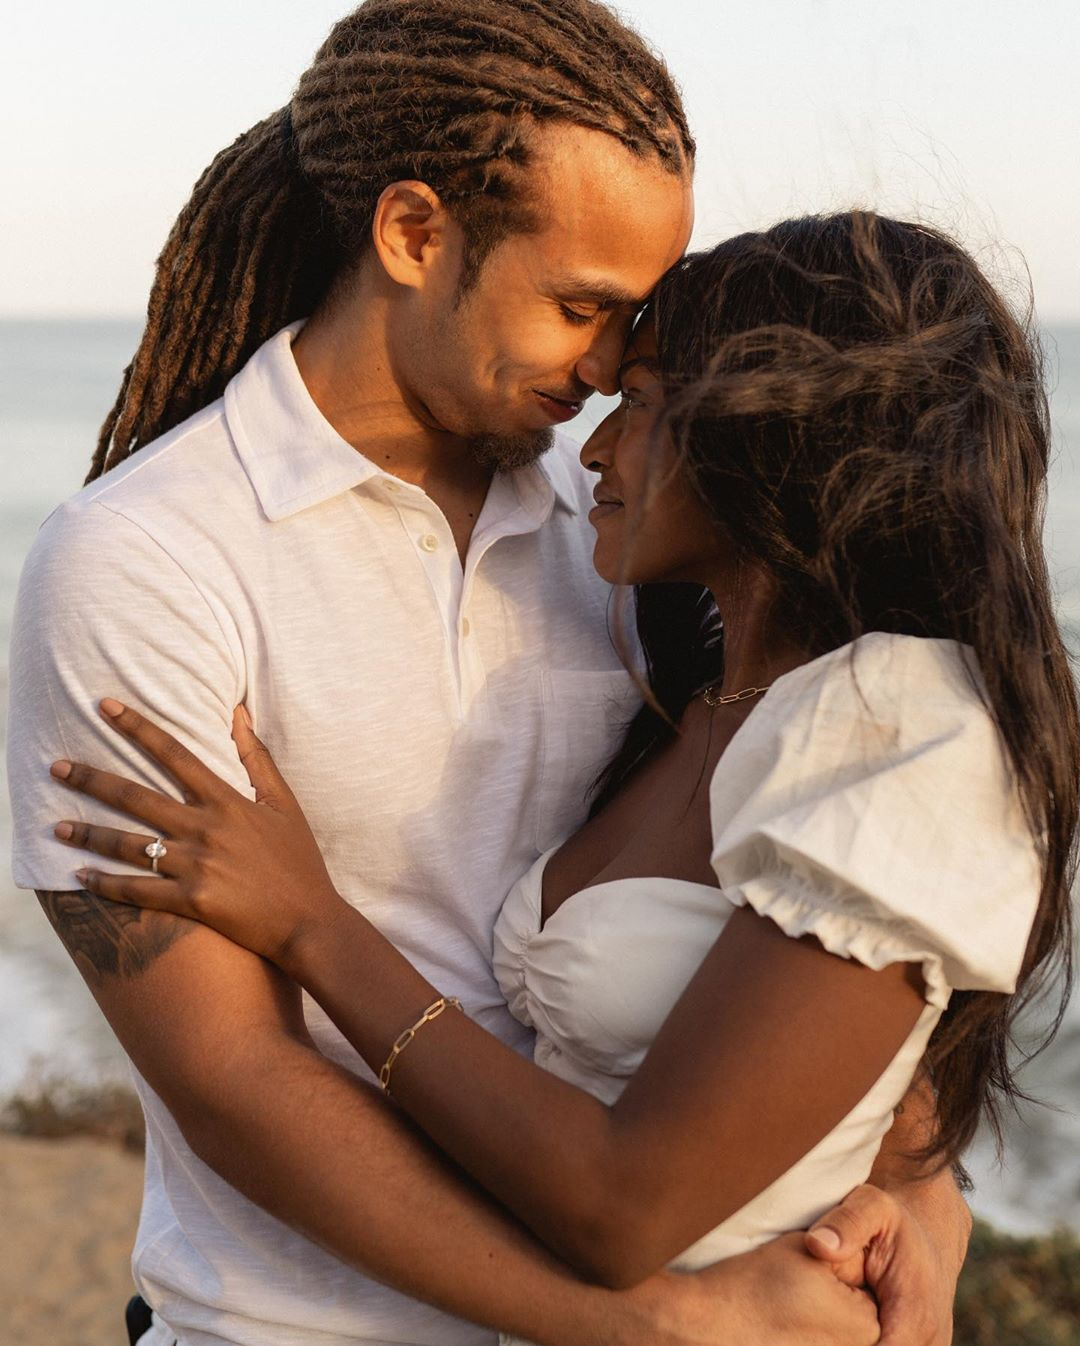 Are You the One? Stars Uche and Clinton Love Story and Seaside Proposal